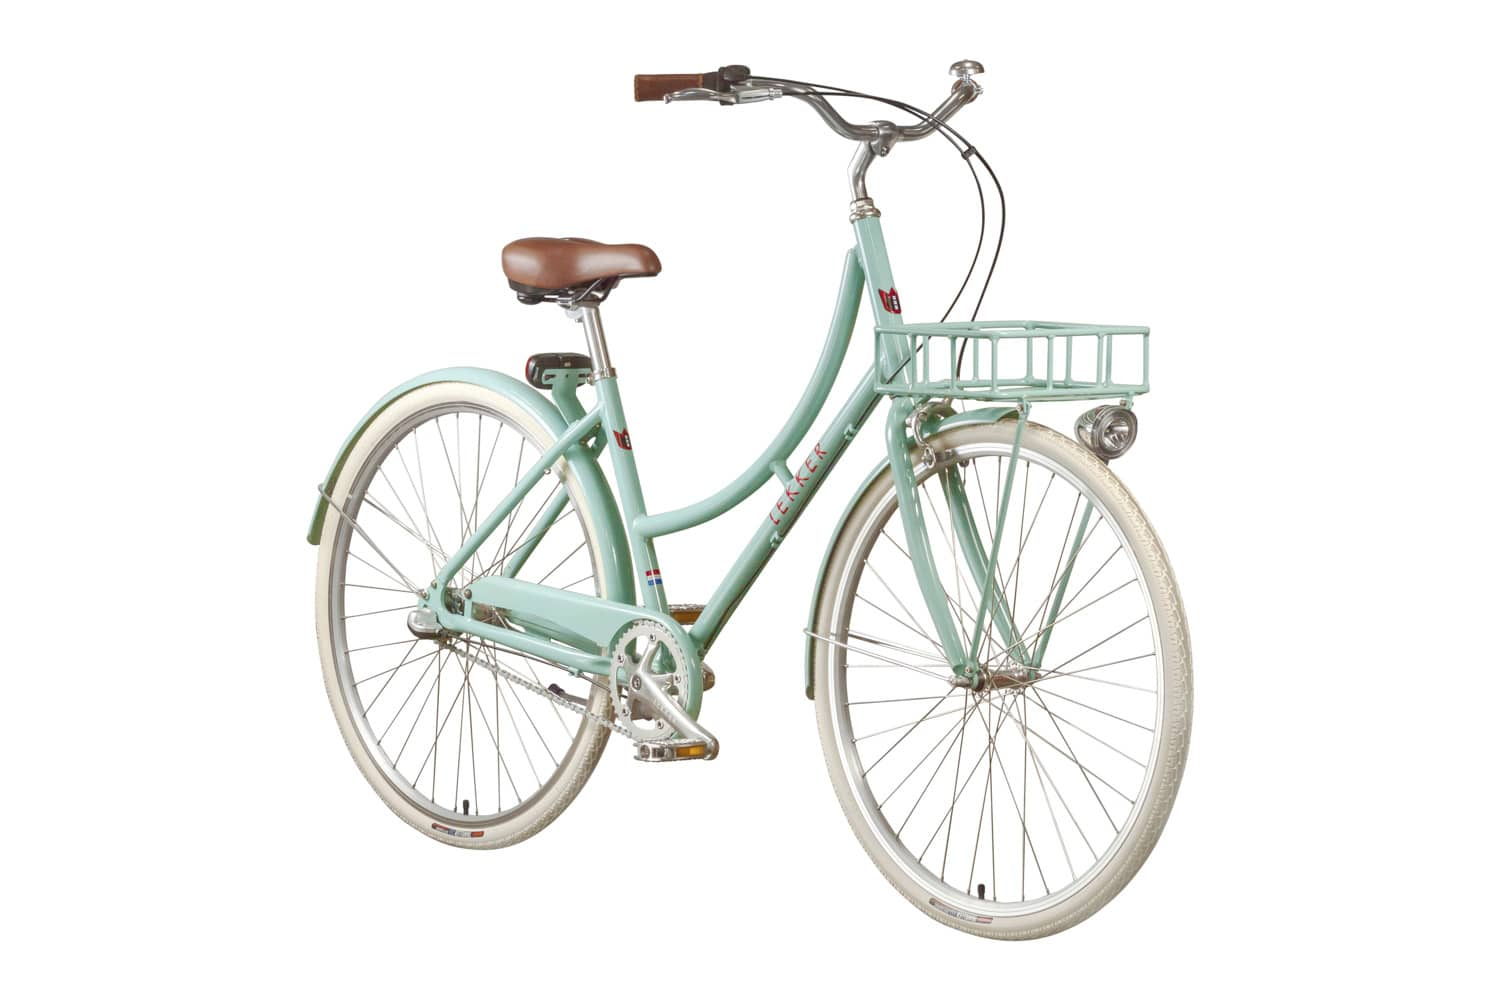 Lekker Sportief Pastel Blue Premium Dutch Bike Retro Vintage Bike